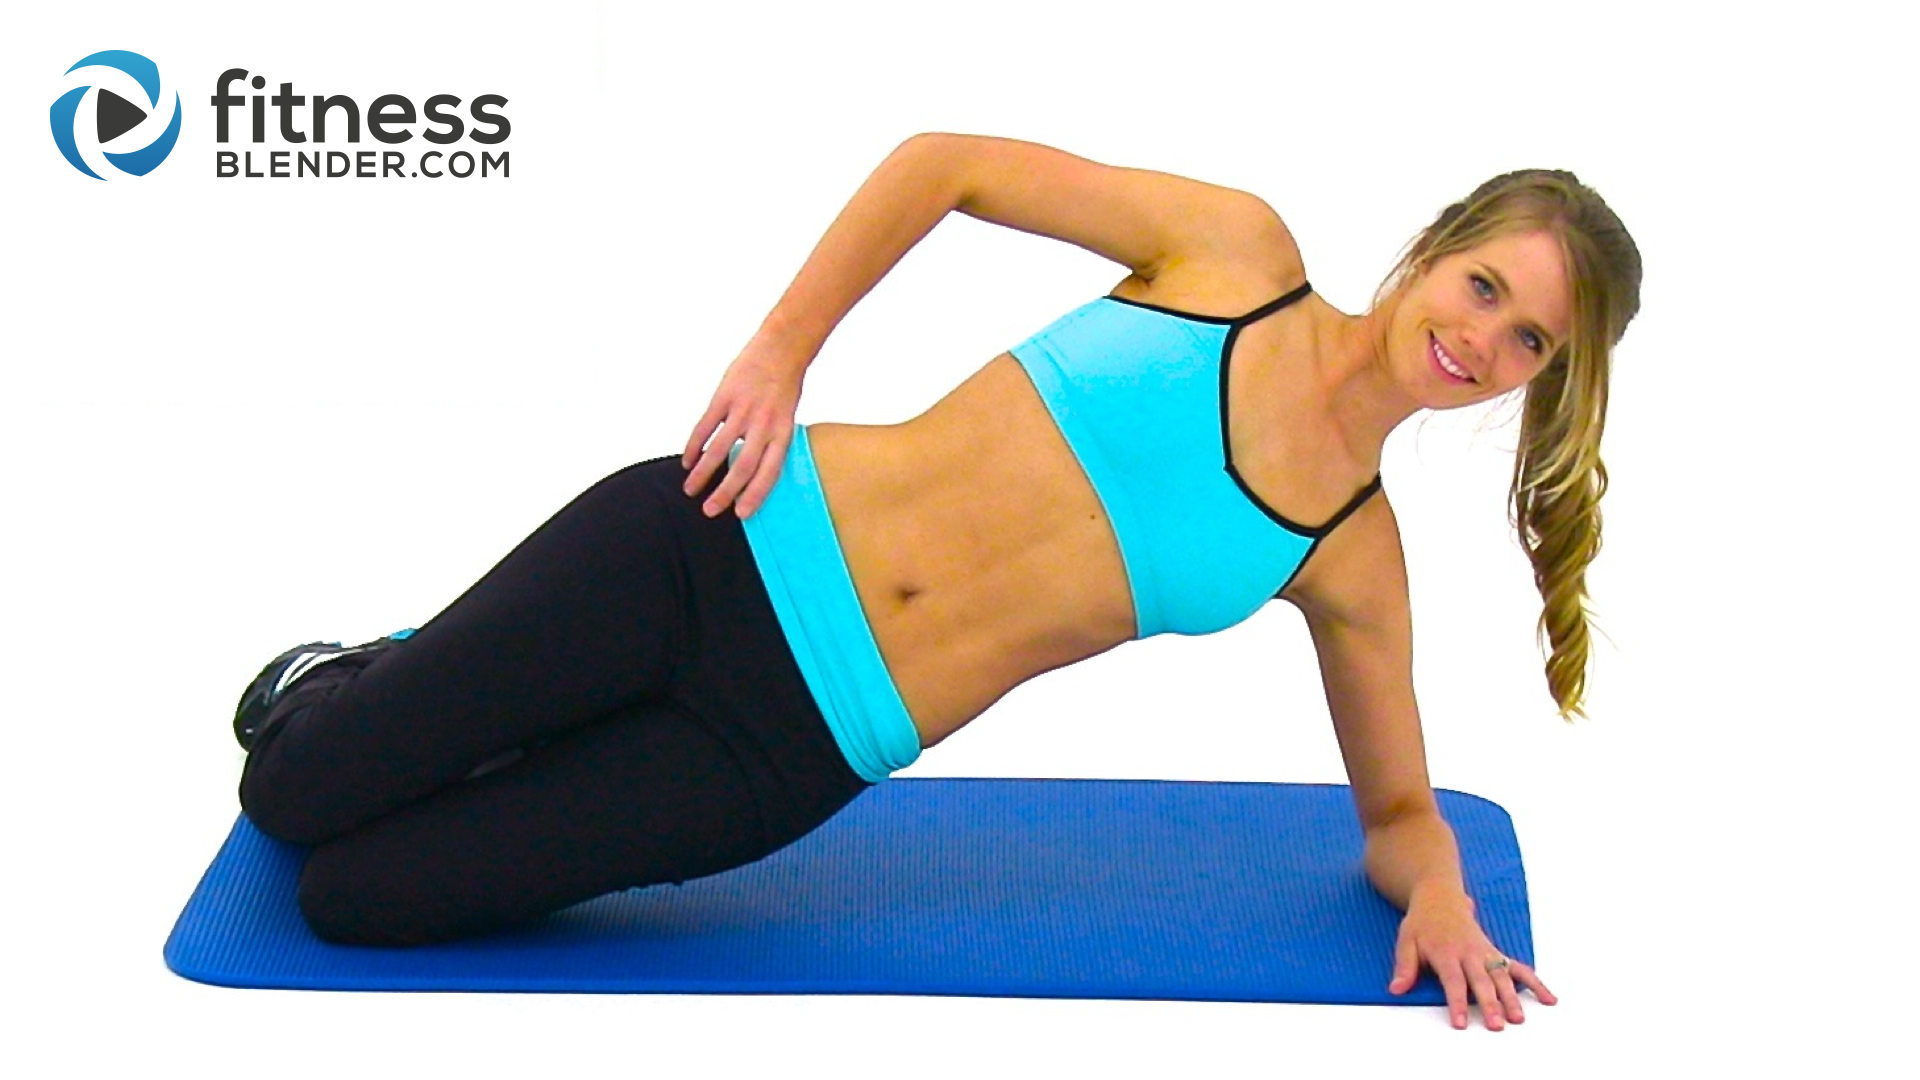 Fitness Blender 5x5x5 Pulse Workout For Abs And Obliques